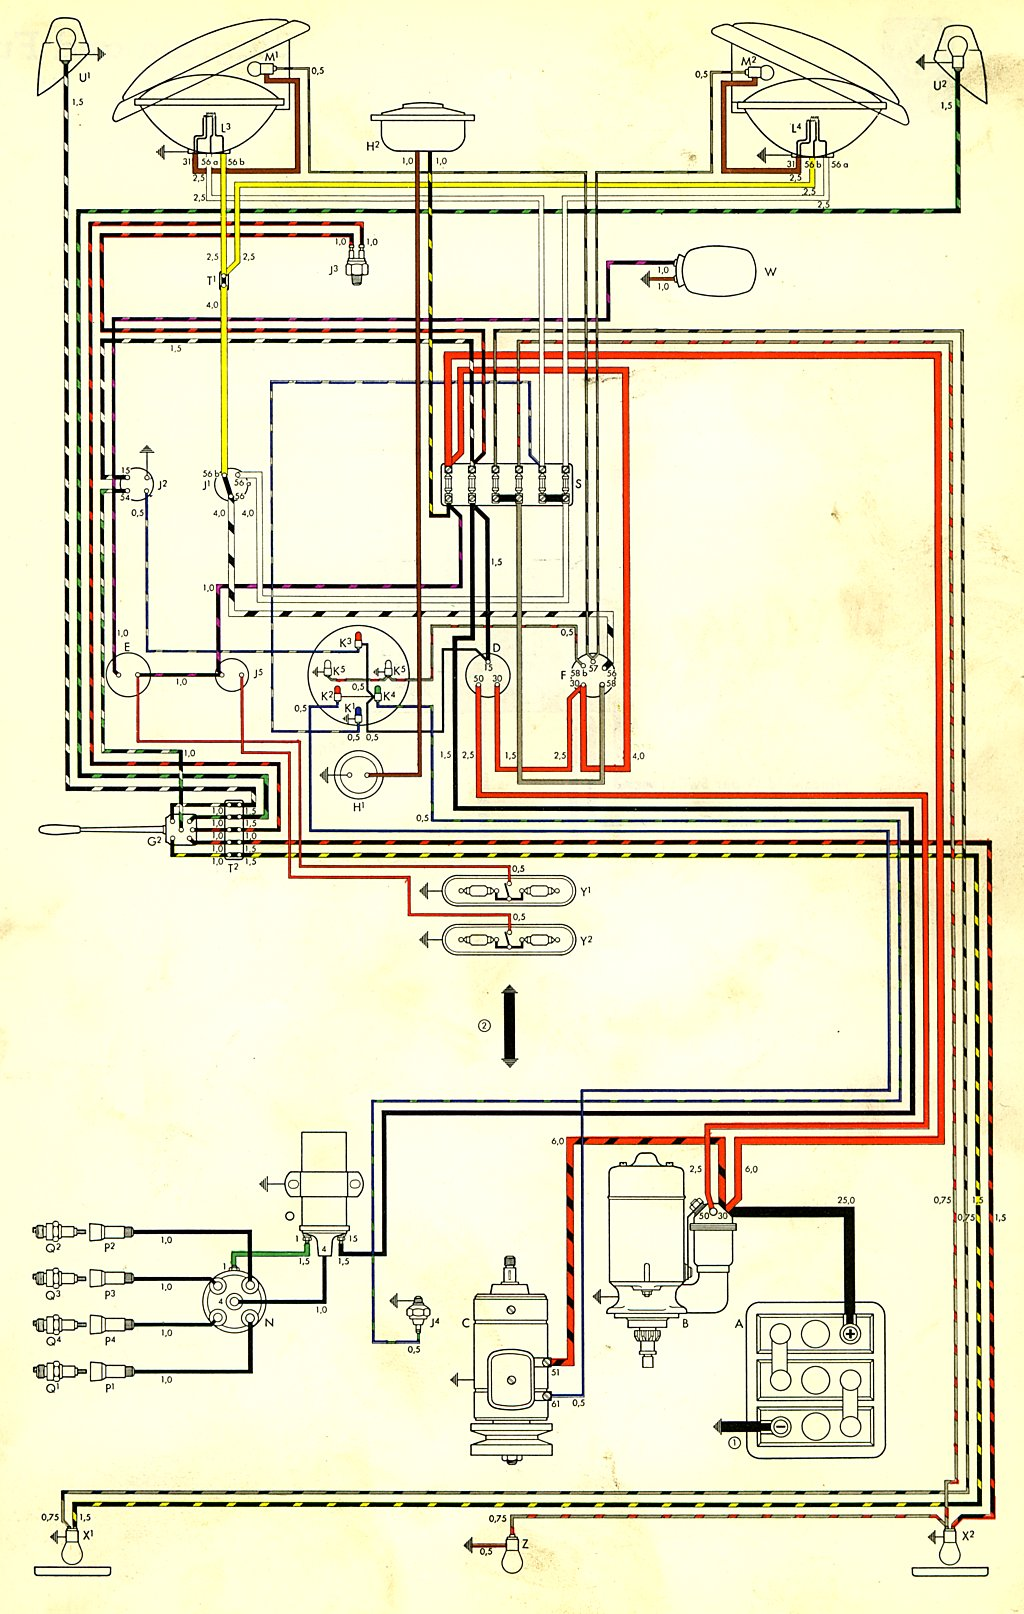 Wiring Works San Pedro - Electrical Work Wiring Diagram •